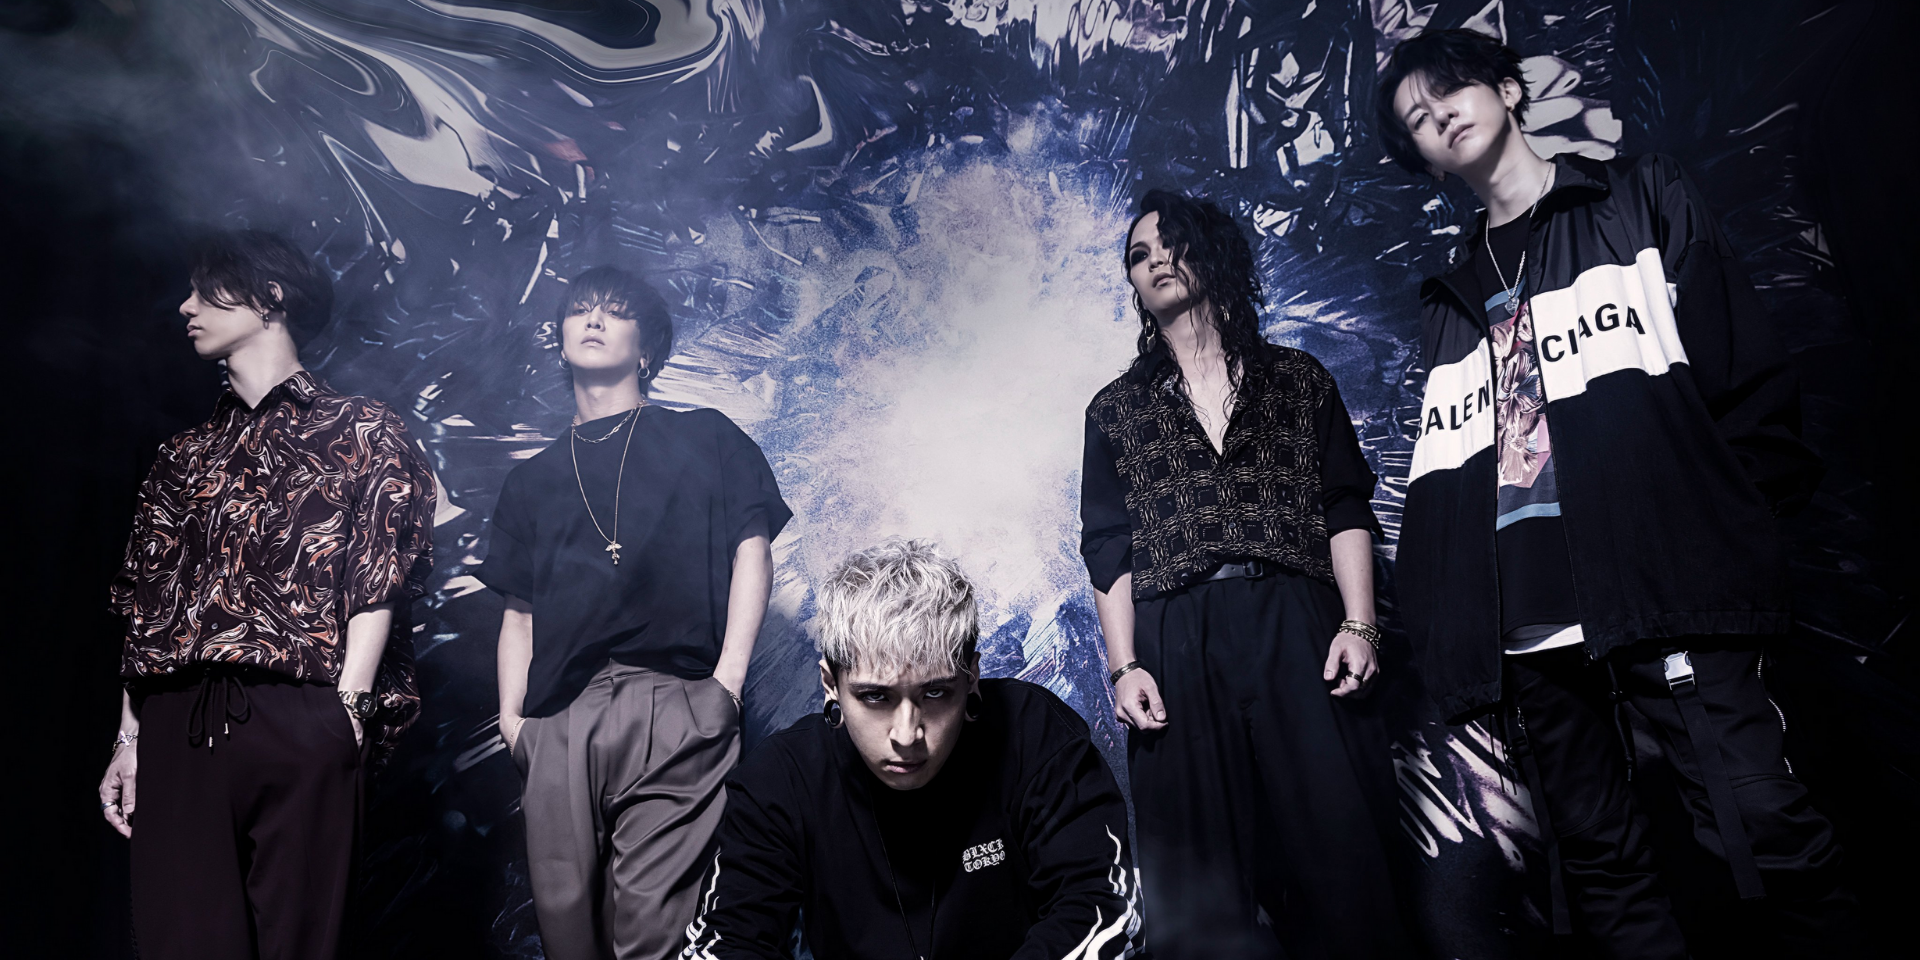 NOCTURNAL BLOODLUST to release new single 'THE ONE', announce lineup for '6DAYS OF CHAOS' concert series